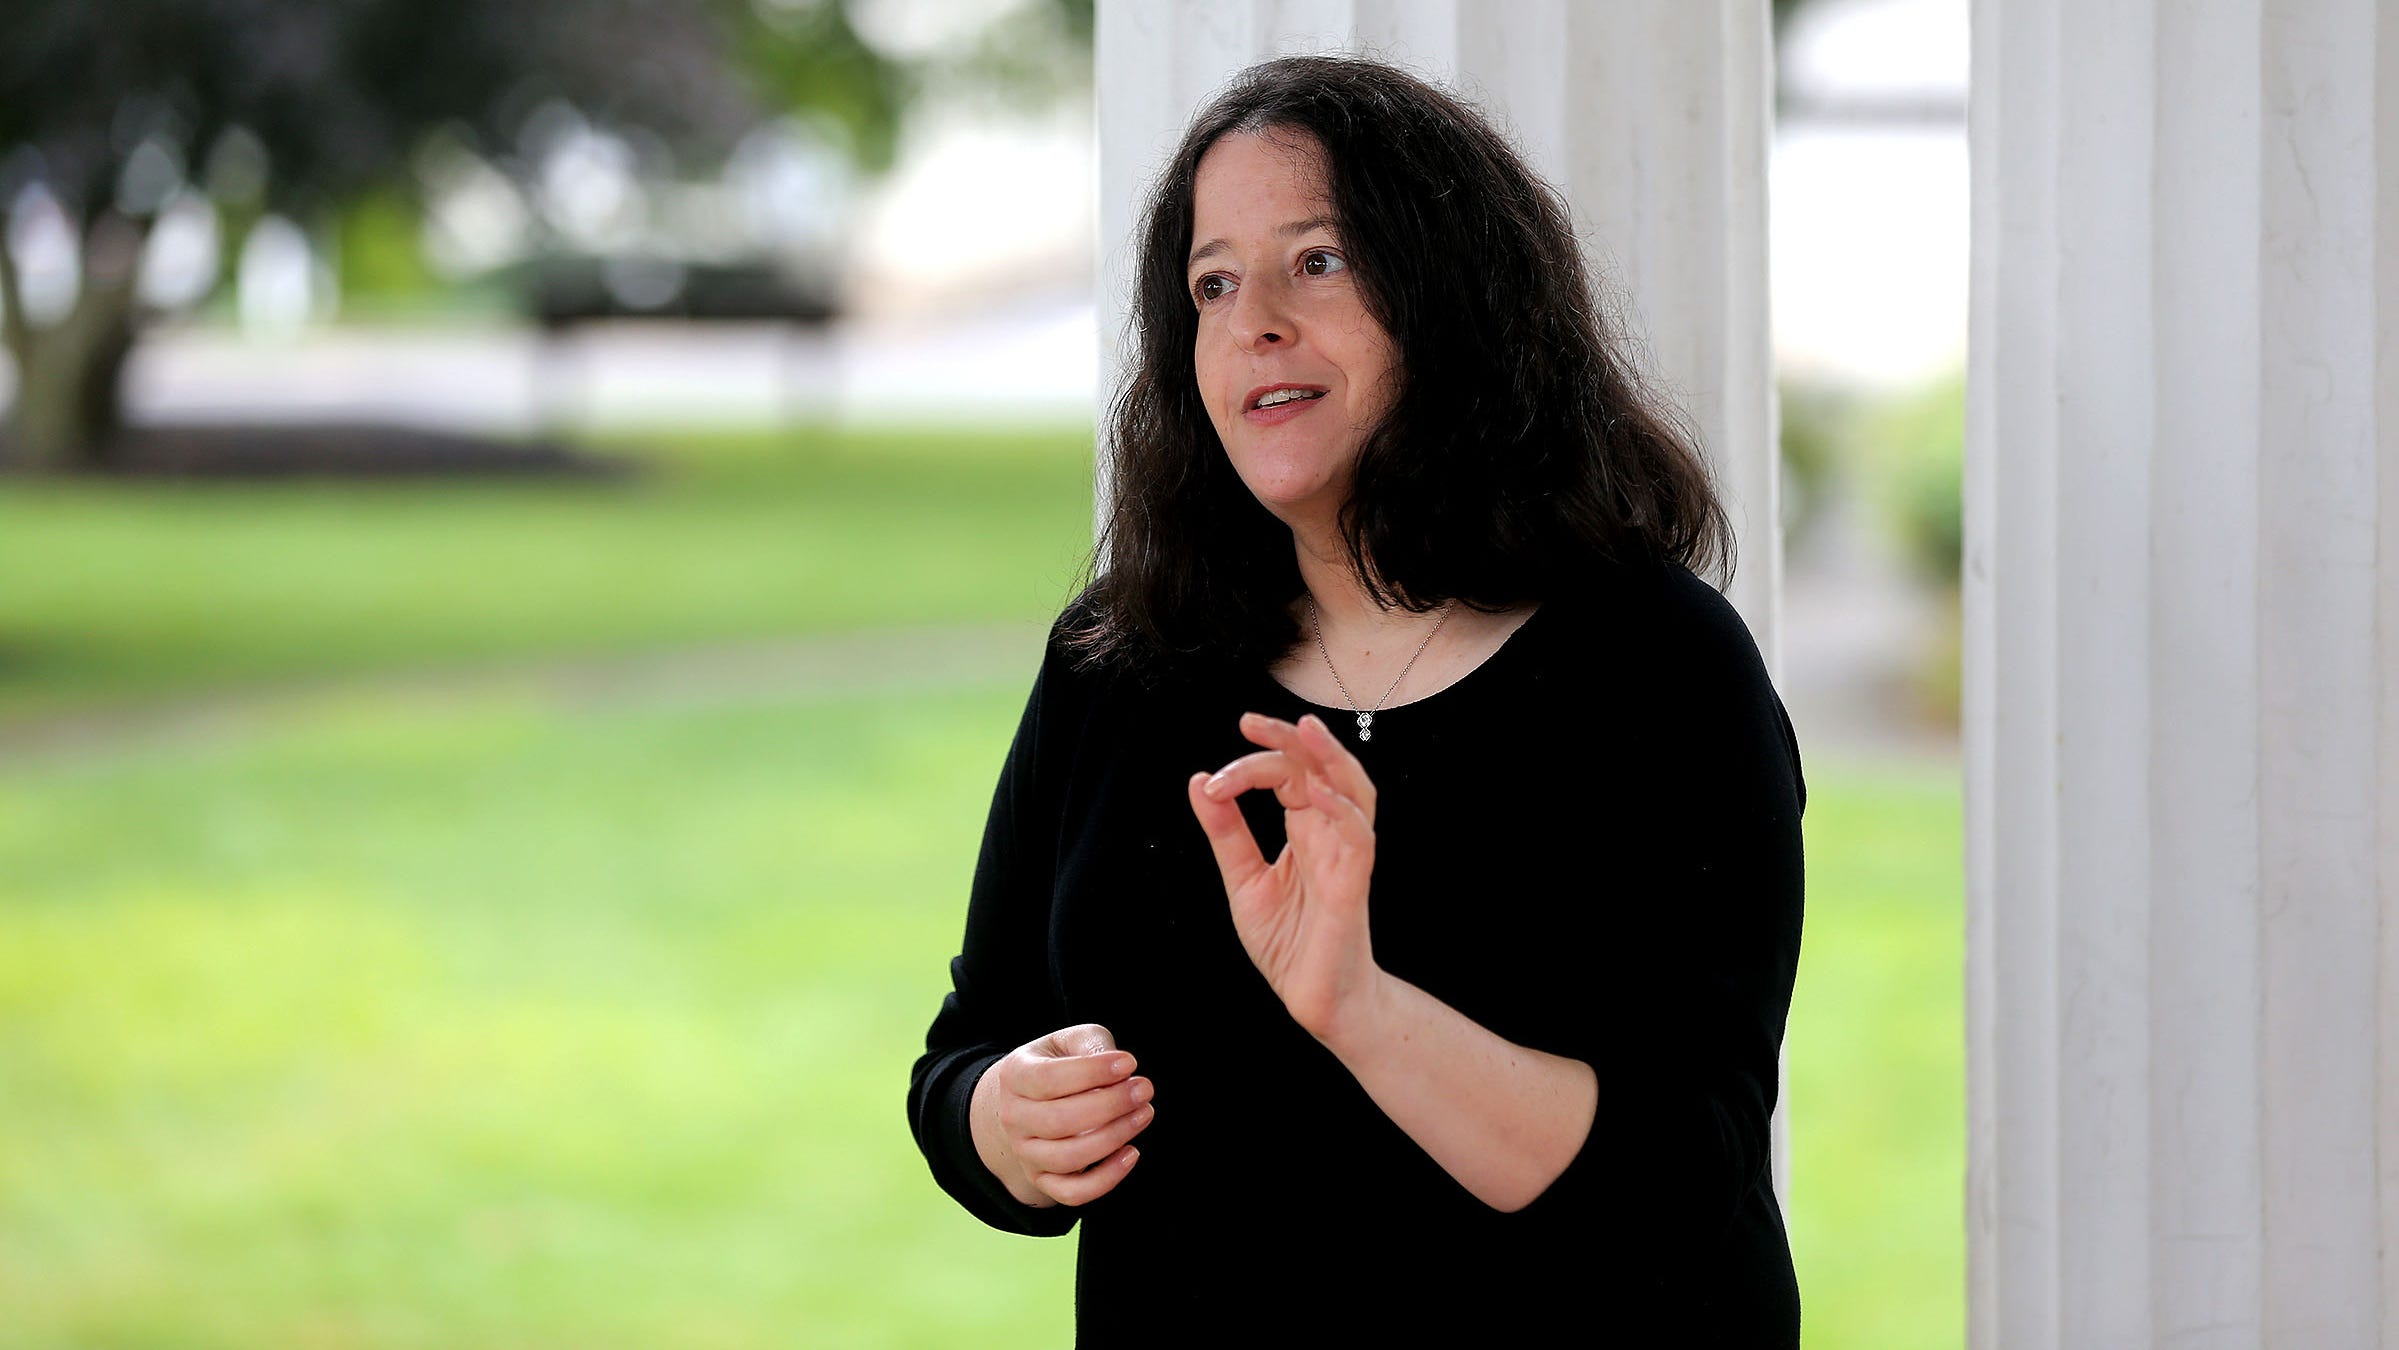 Lori Rassas, a Rumson-Fair Haven High School graduate and human resources attorney, is interviewed Thursday, Septemeber 9, 2021, at Victory Park in Rumson. She says that employers and workers are in for huge changes once the pandemic recedes.